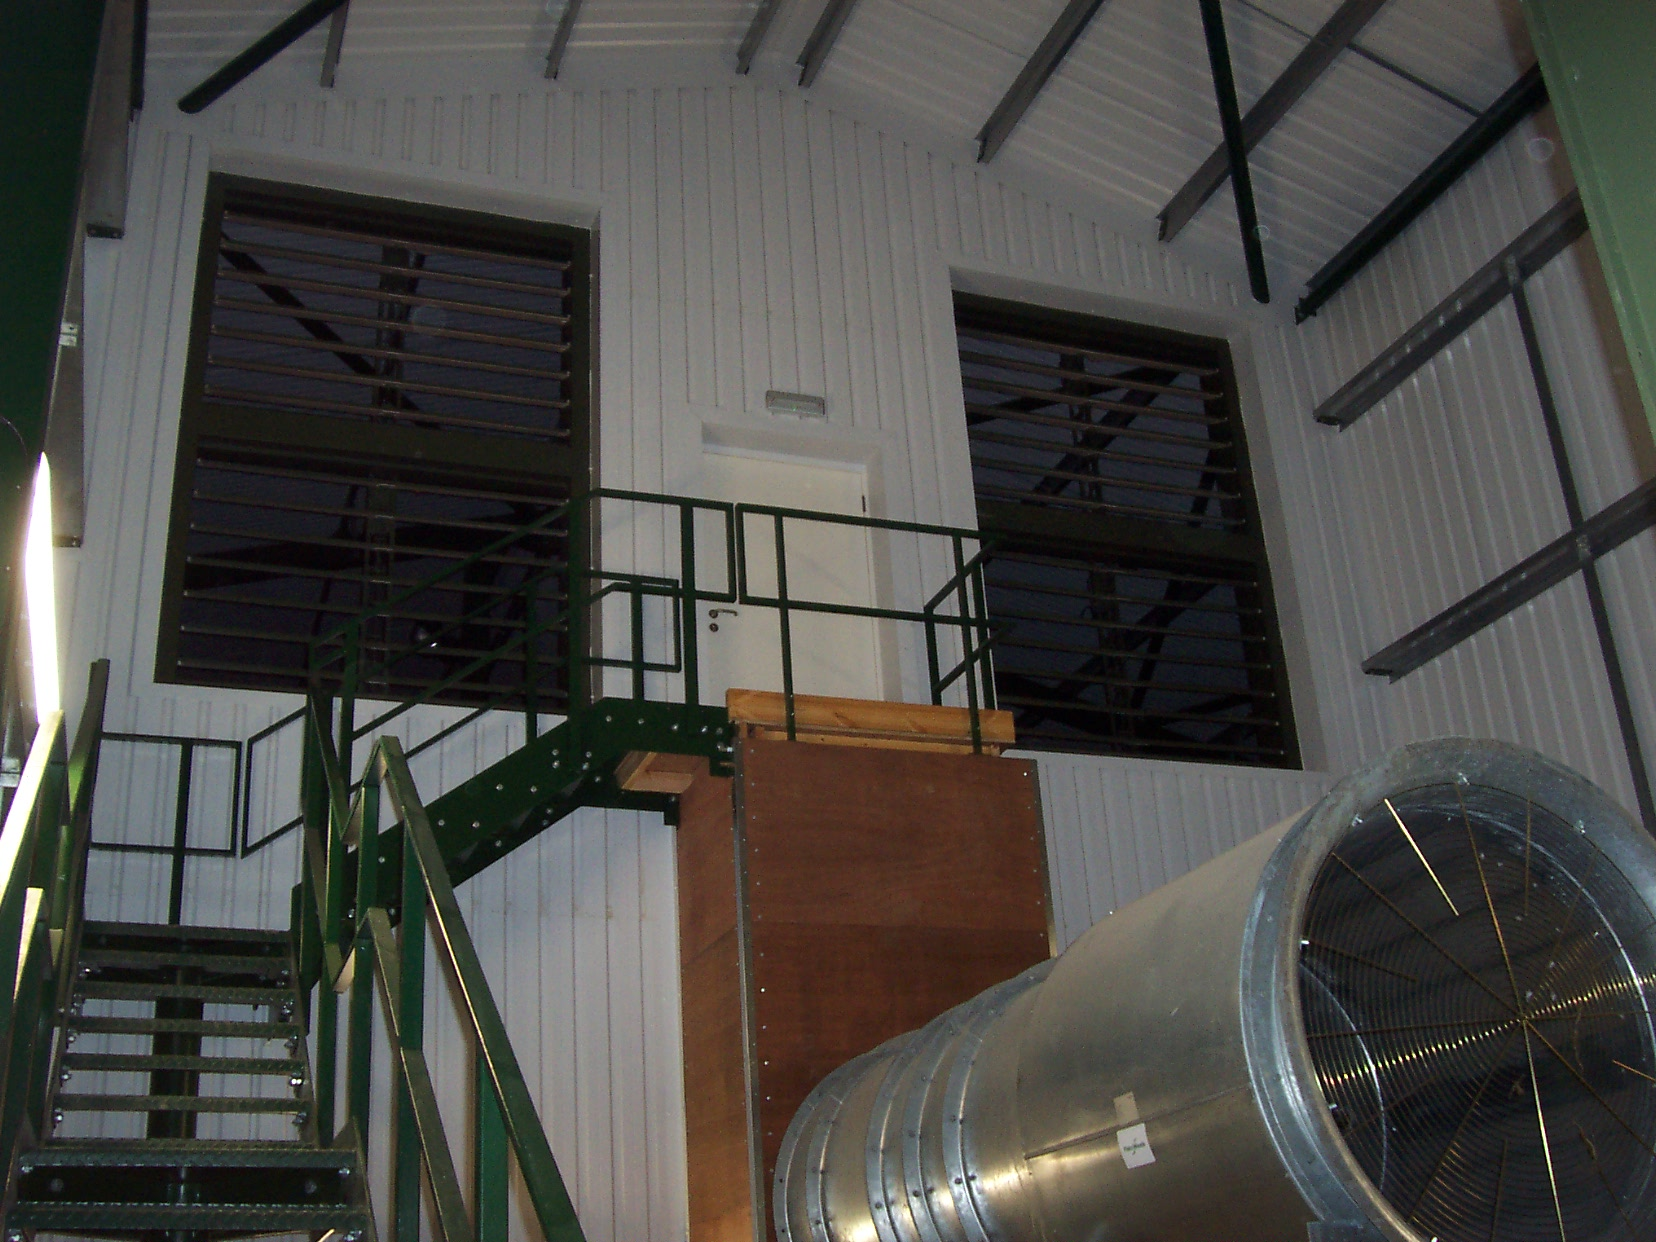 Recirculation louvres and large axial fans